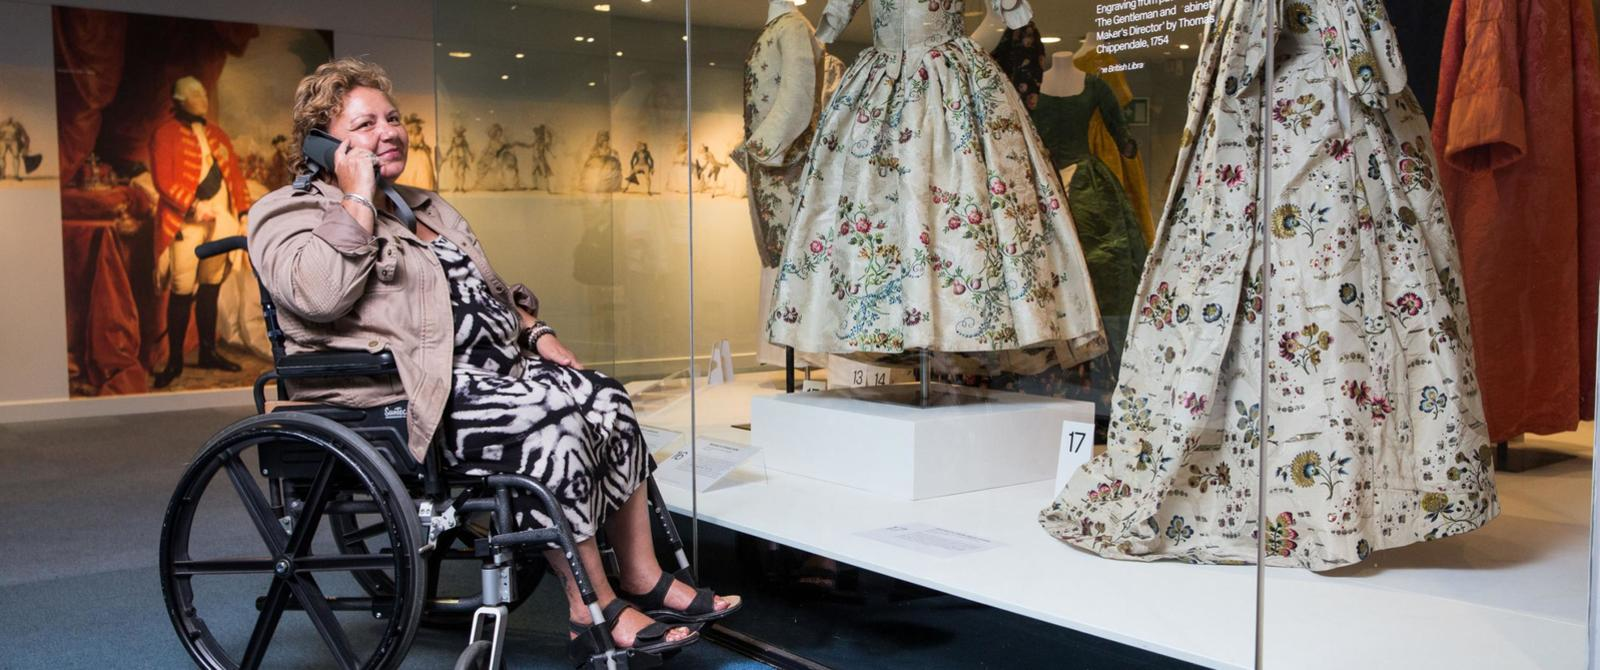 Image: Accessibility at the Fashion Museum